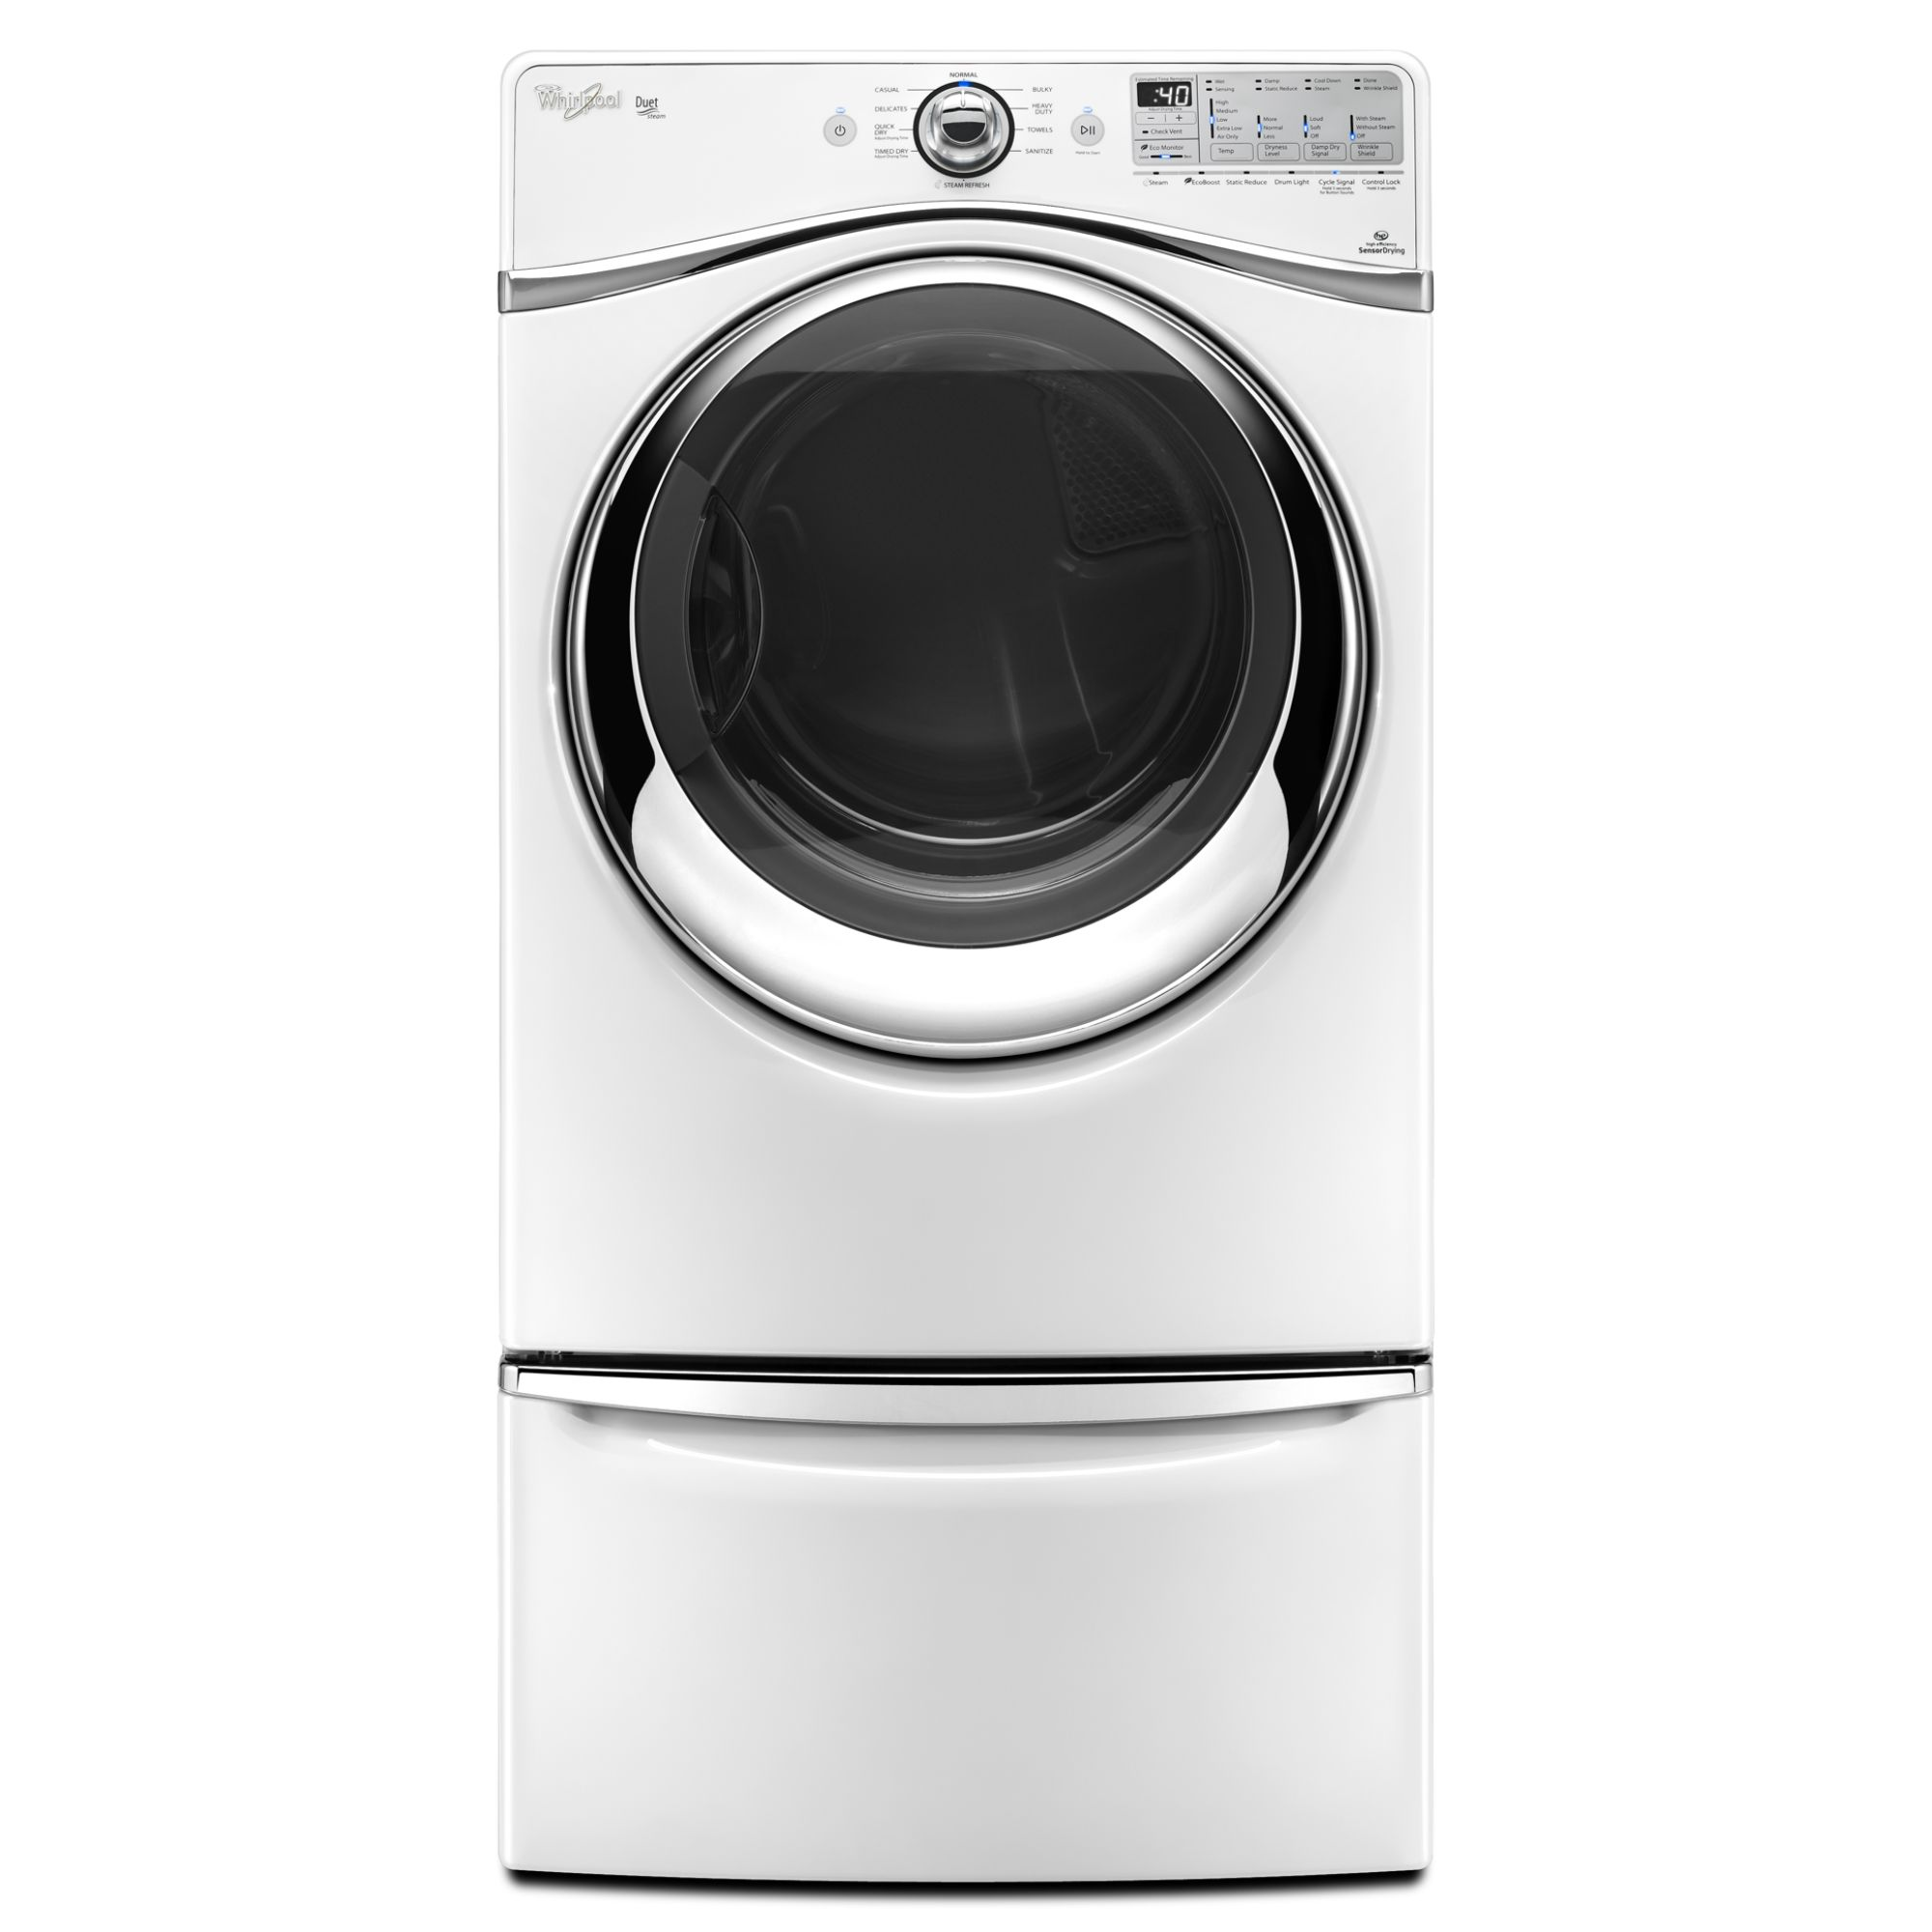 Whirlpool Duet® 7.4 cu. ft. Electric Dryer w/ Advanced Moisture Sensing - White